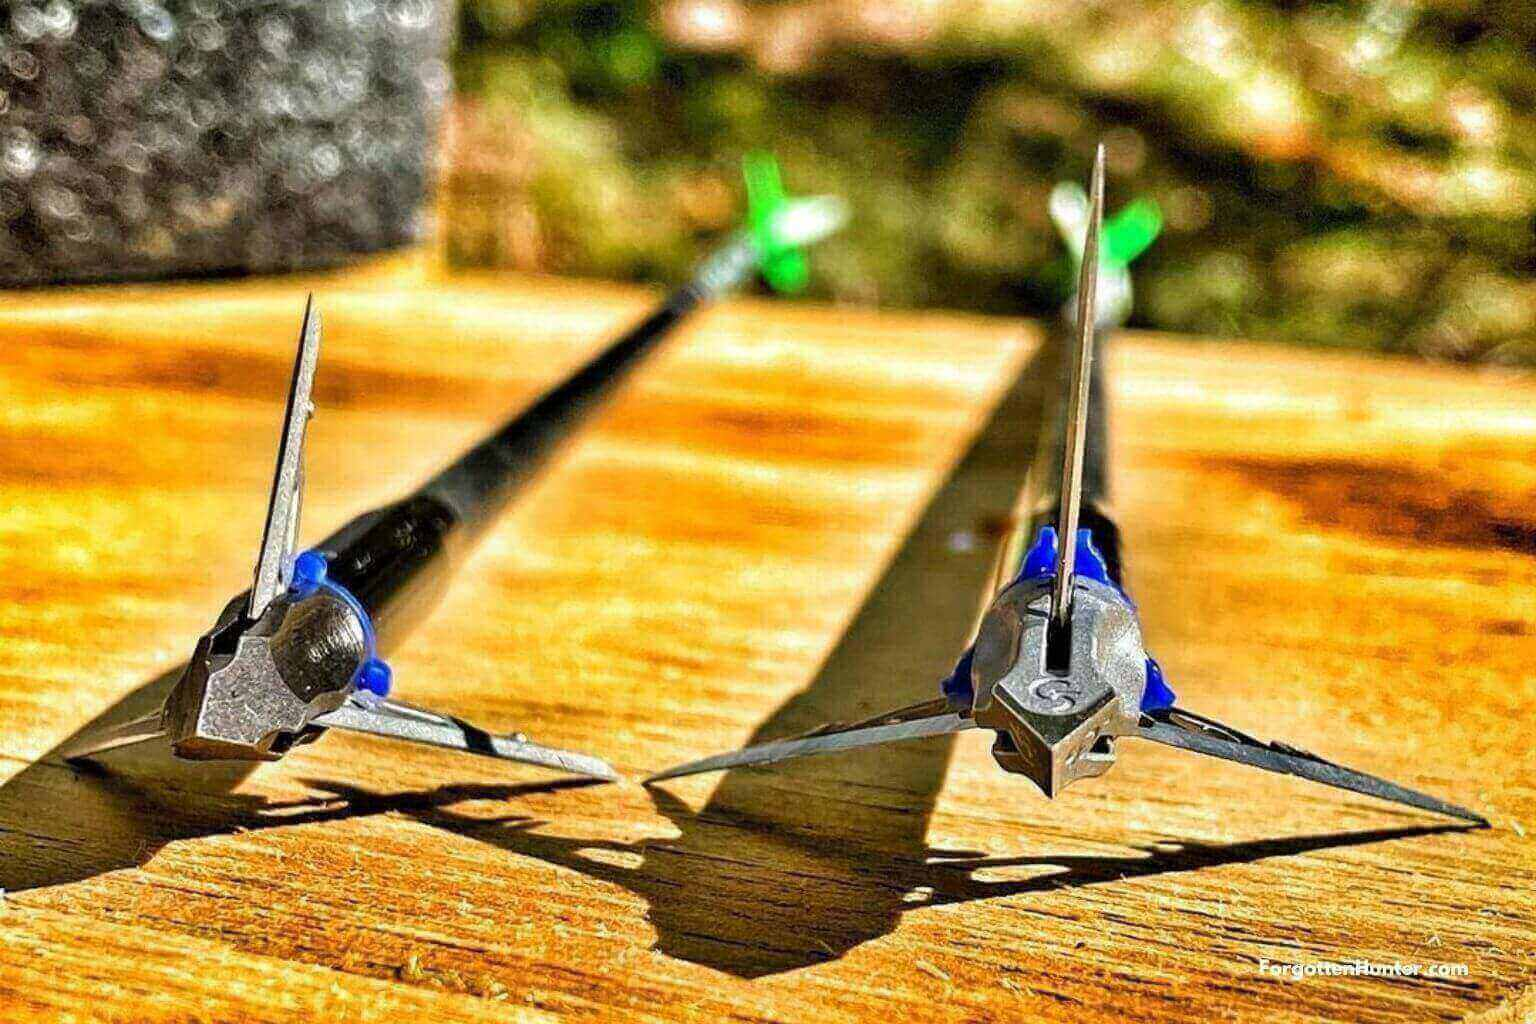 The 15 Best Broadheads For Crossbows in 2021 - Reviews & Beginner's Guide